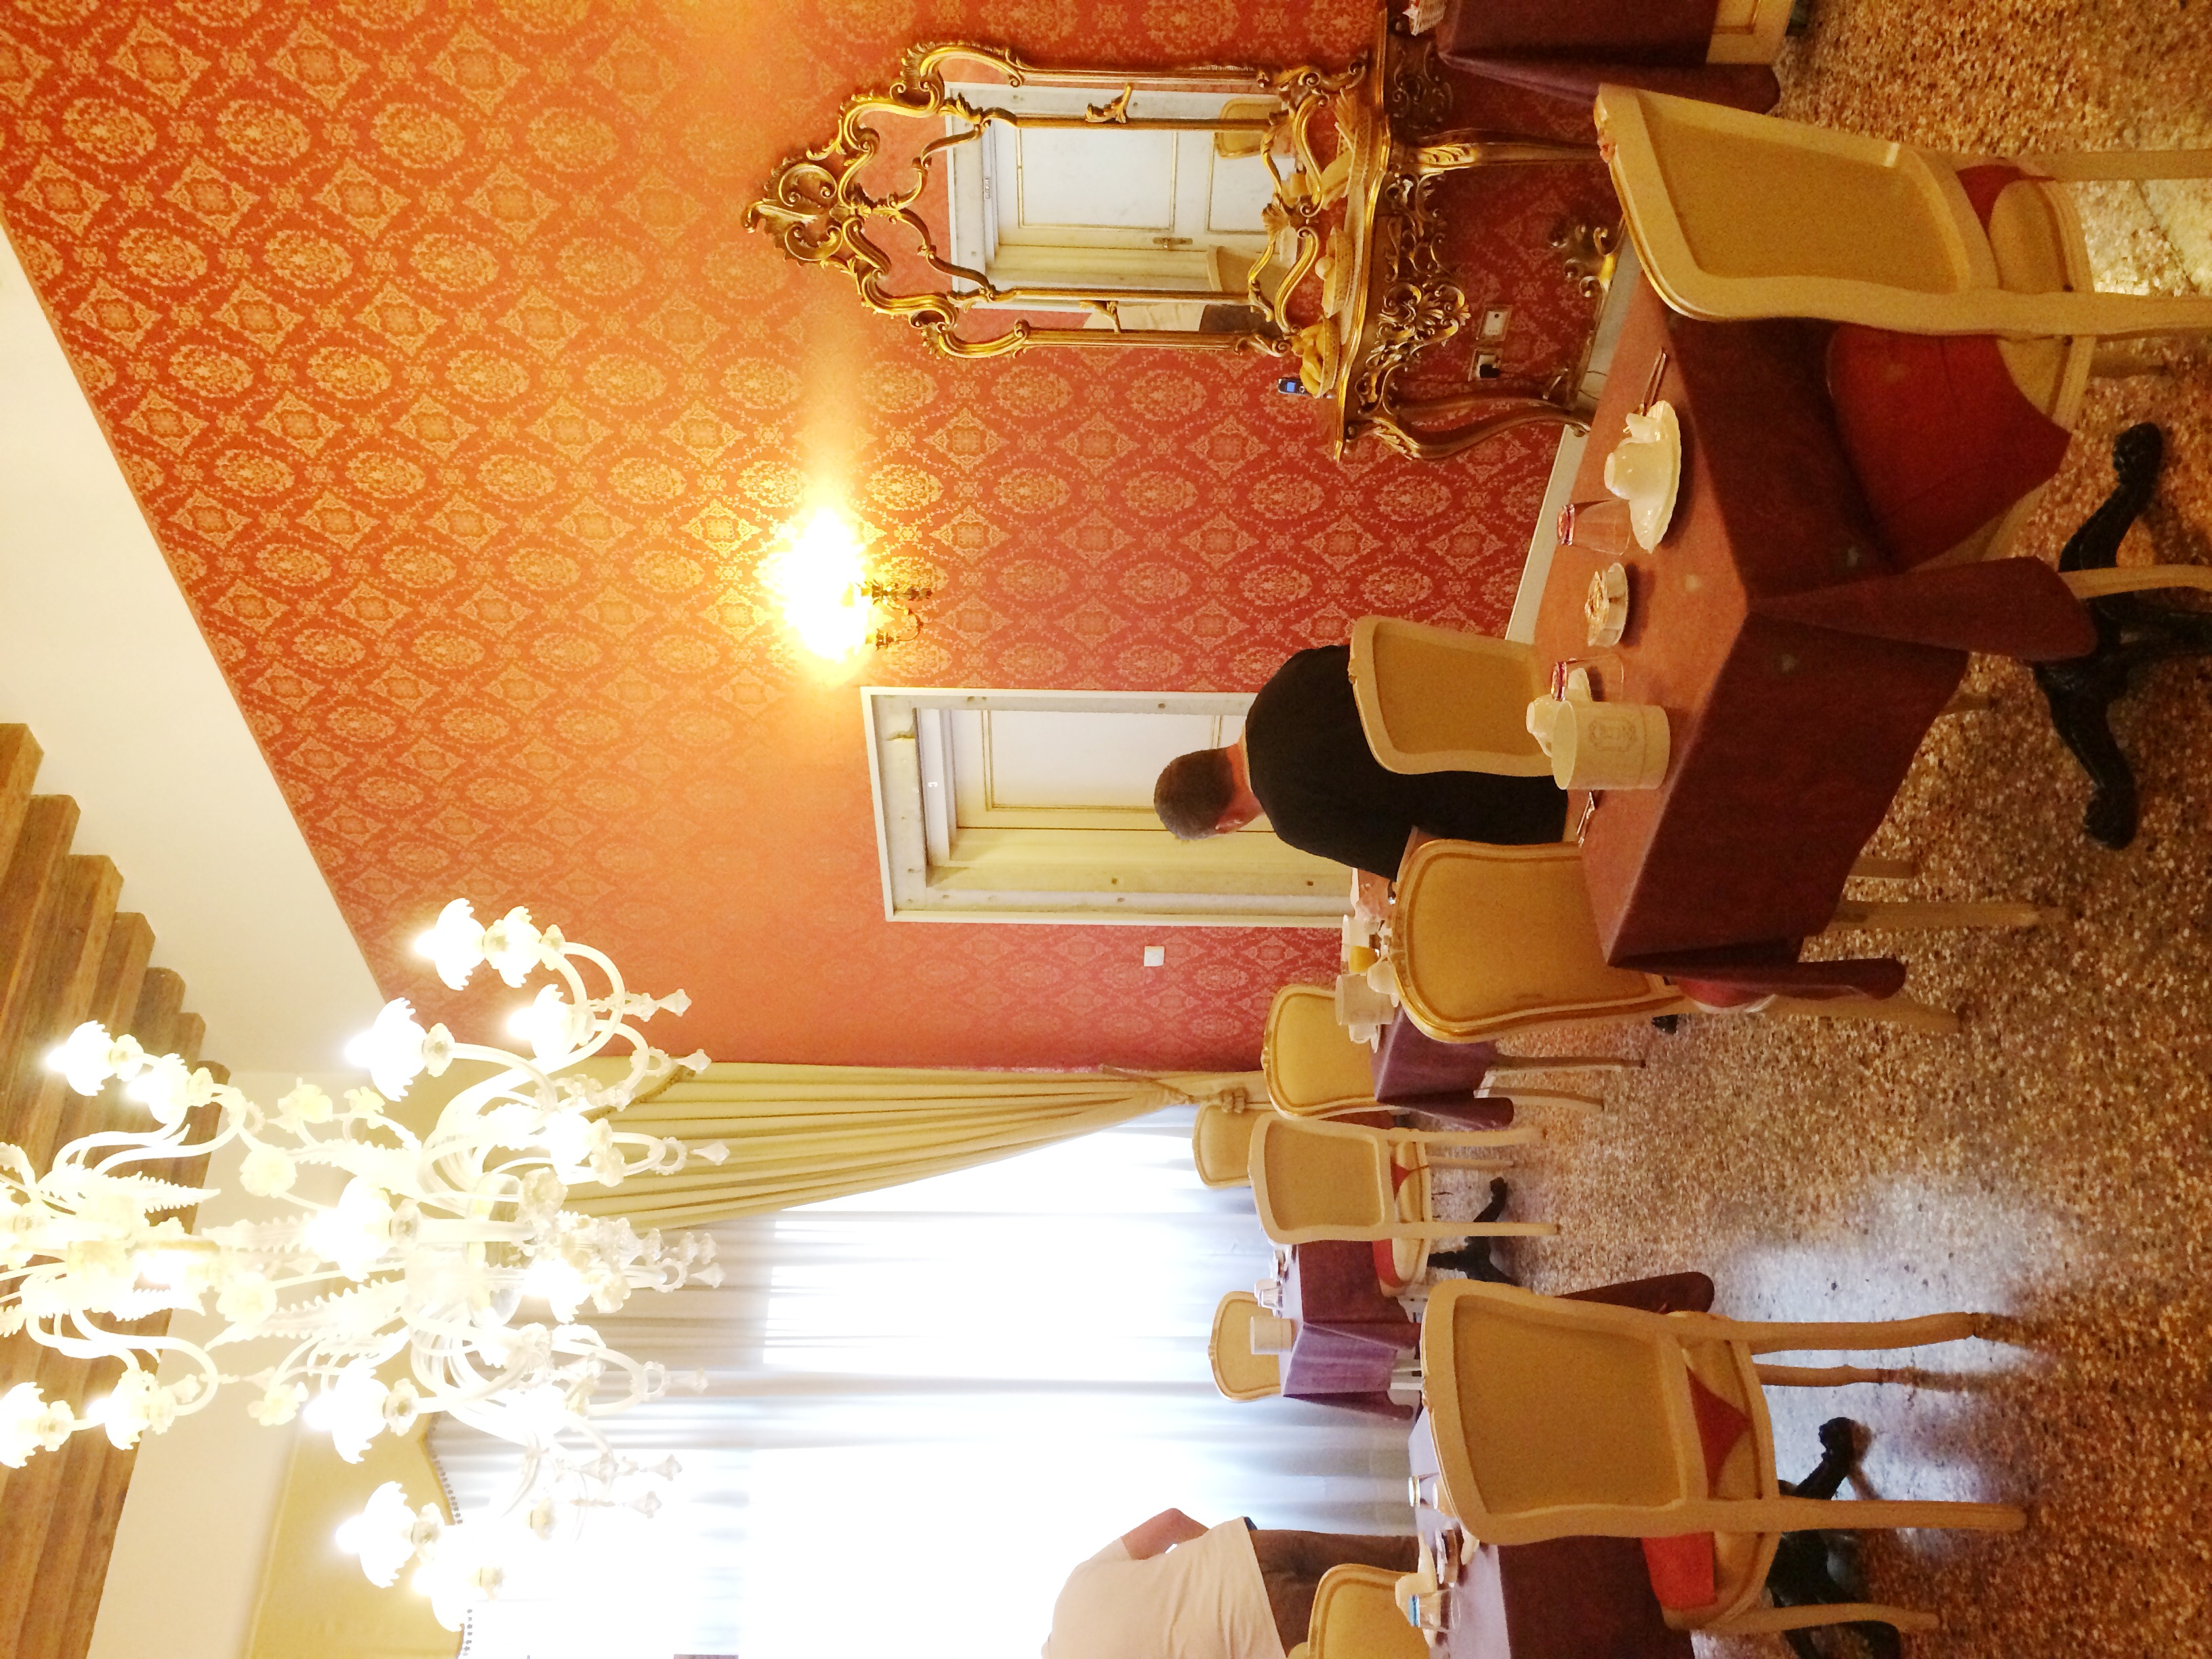 breakfast room (the biggest space in the building)